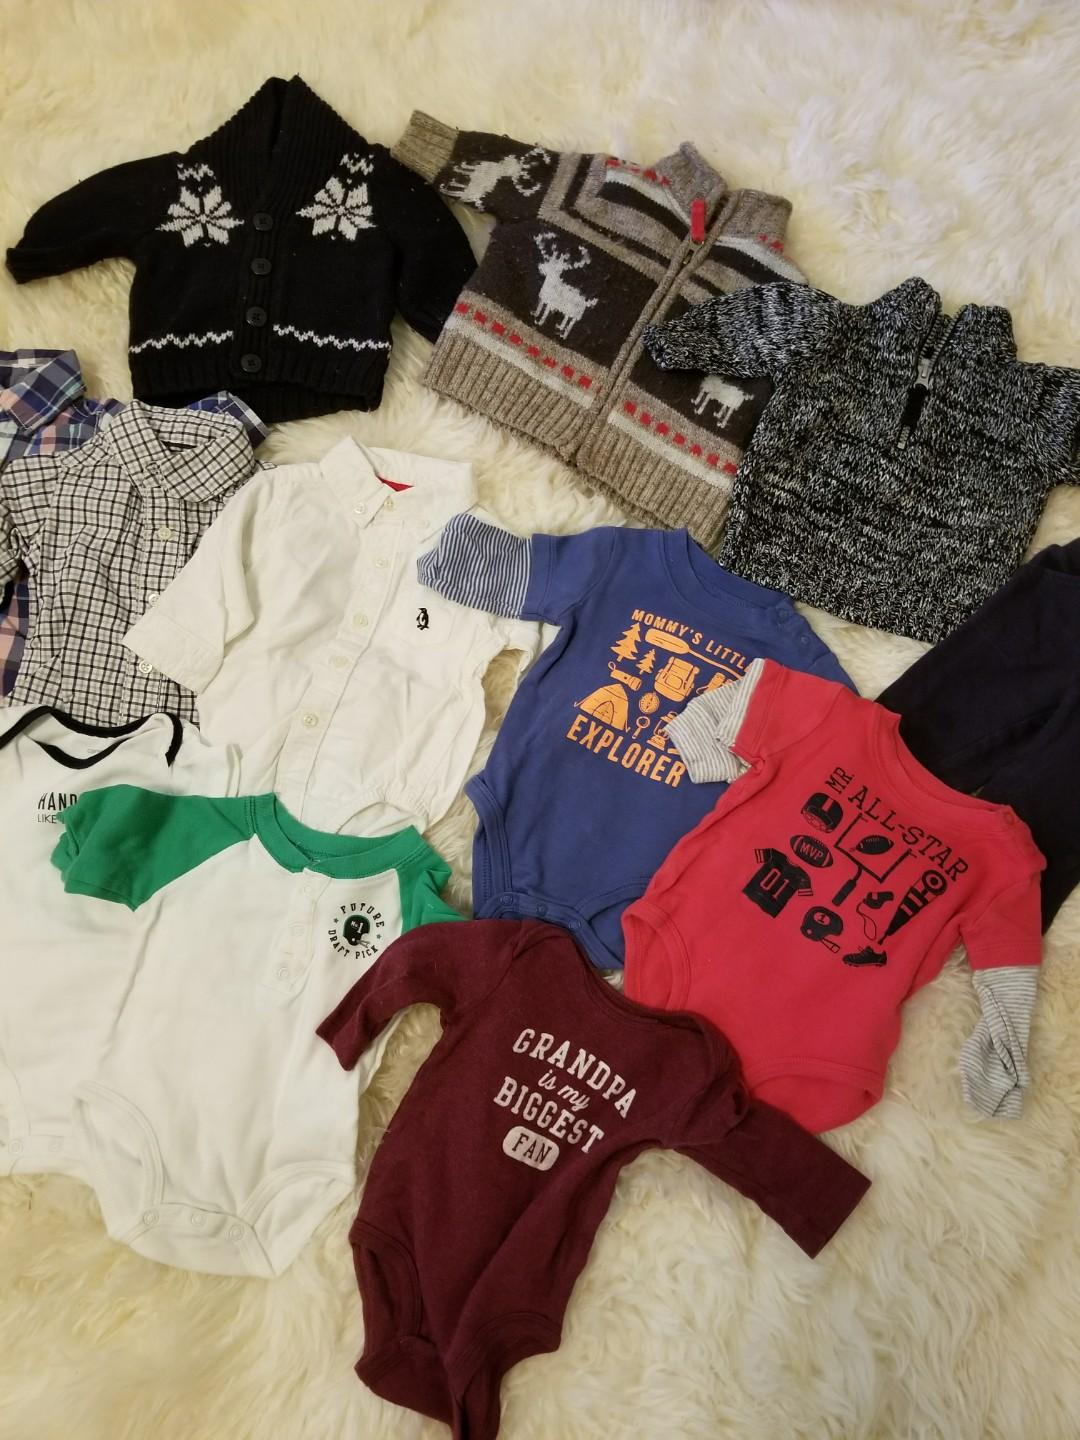 Baby Fall collection Handsome like Daddy clothing lot. Size 3 months. All Carters Oshkosh brand. Everything you need for fall. Take all 3 sweaters for $12 The remaining 9 items for $11. Or take all for $20. Message with